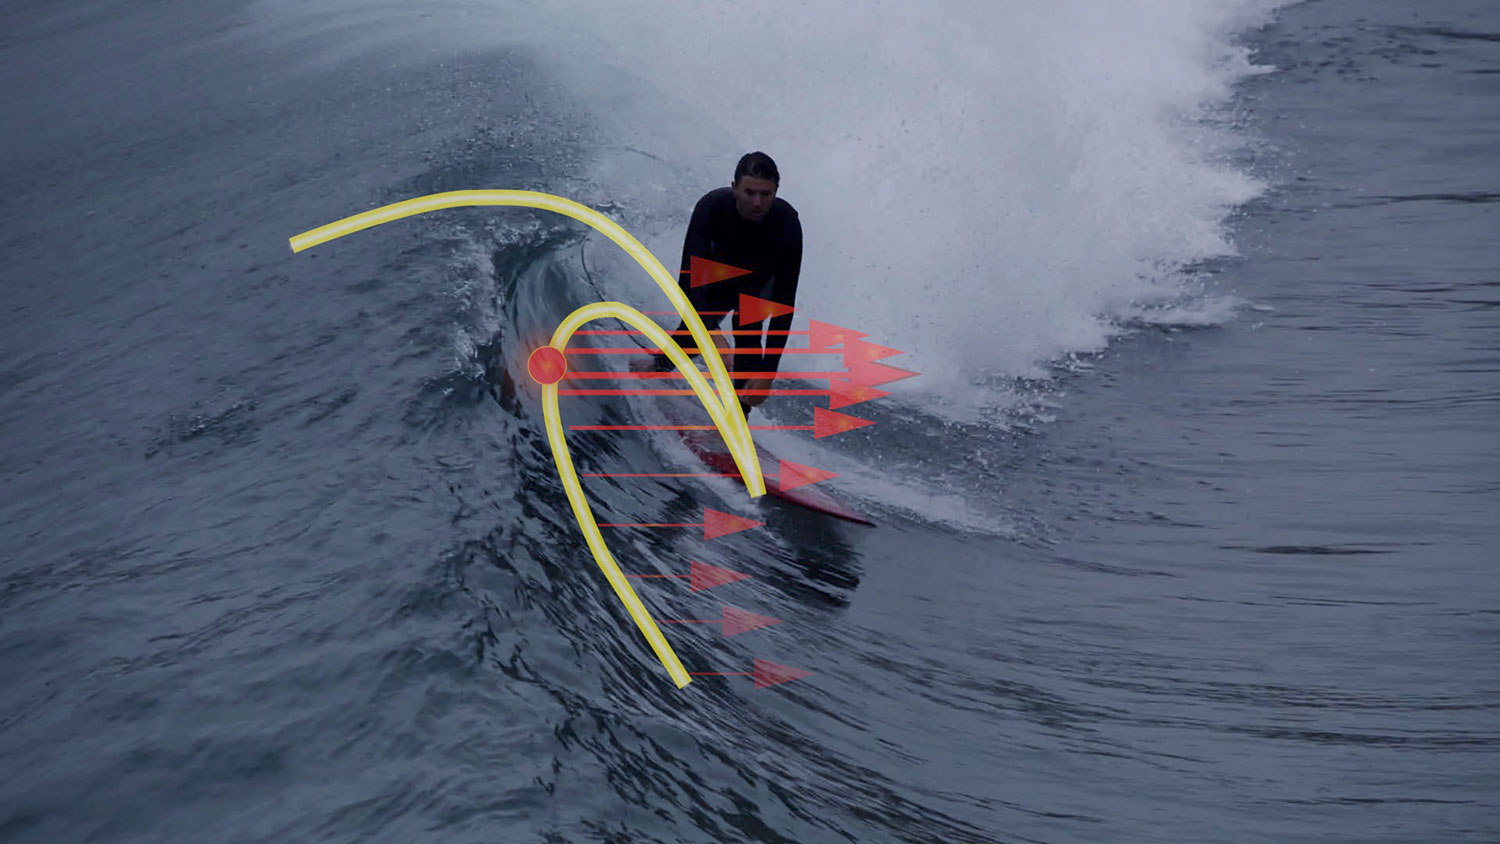 Image of Scripps physical Oceanographer Nick Pizzo surfing